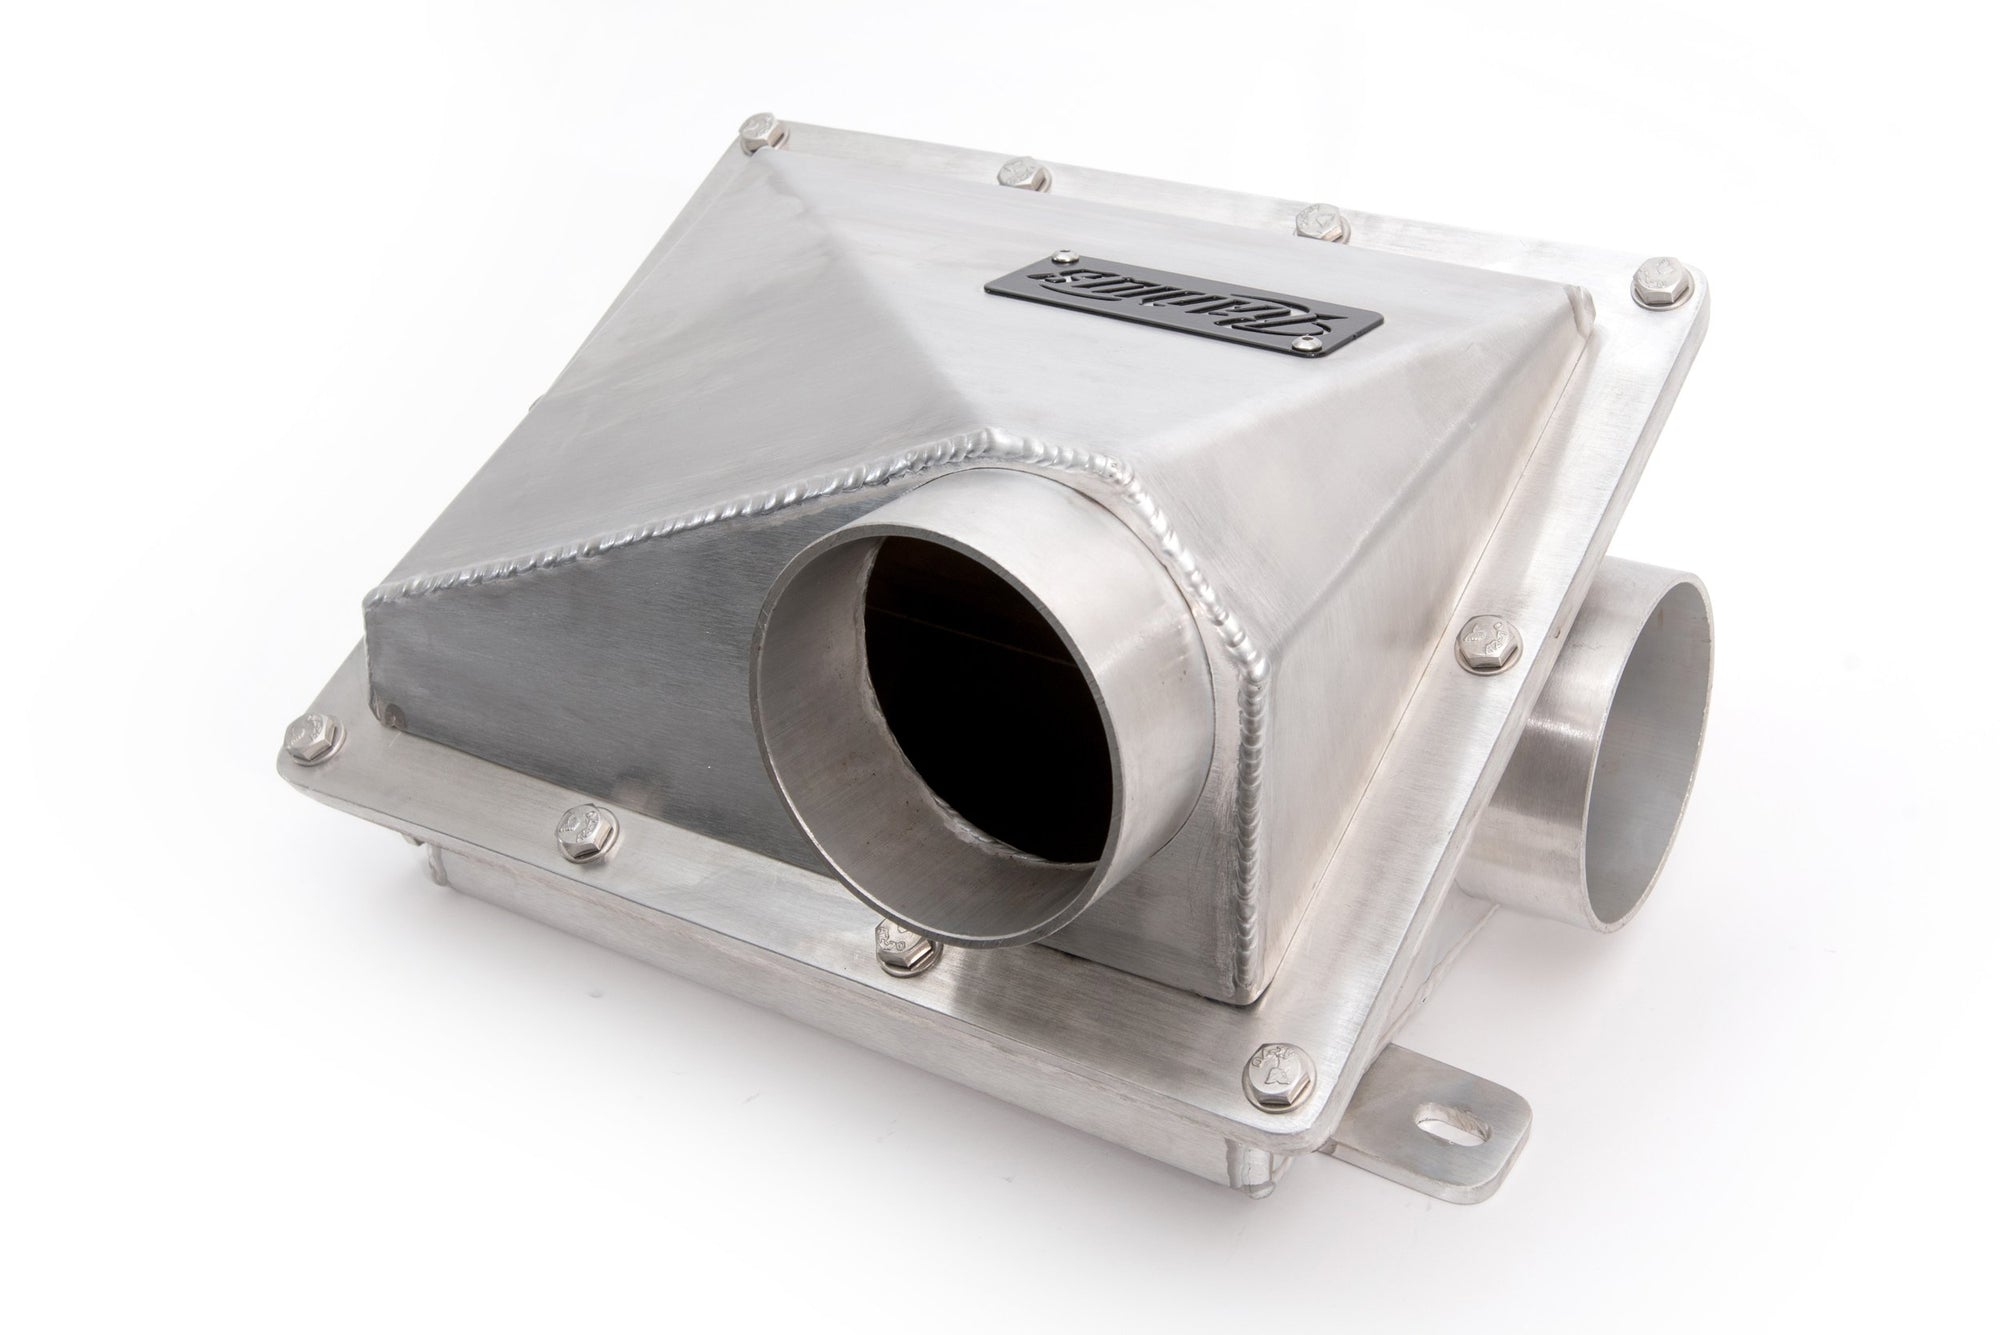 GQ - Airbox - LS1 Panel - Guard Mounted